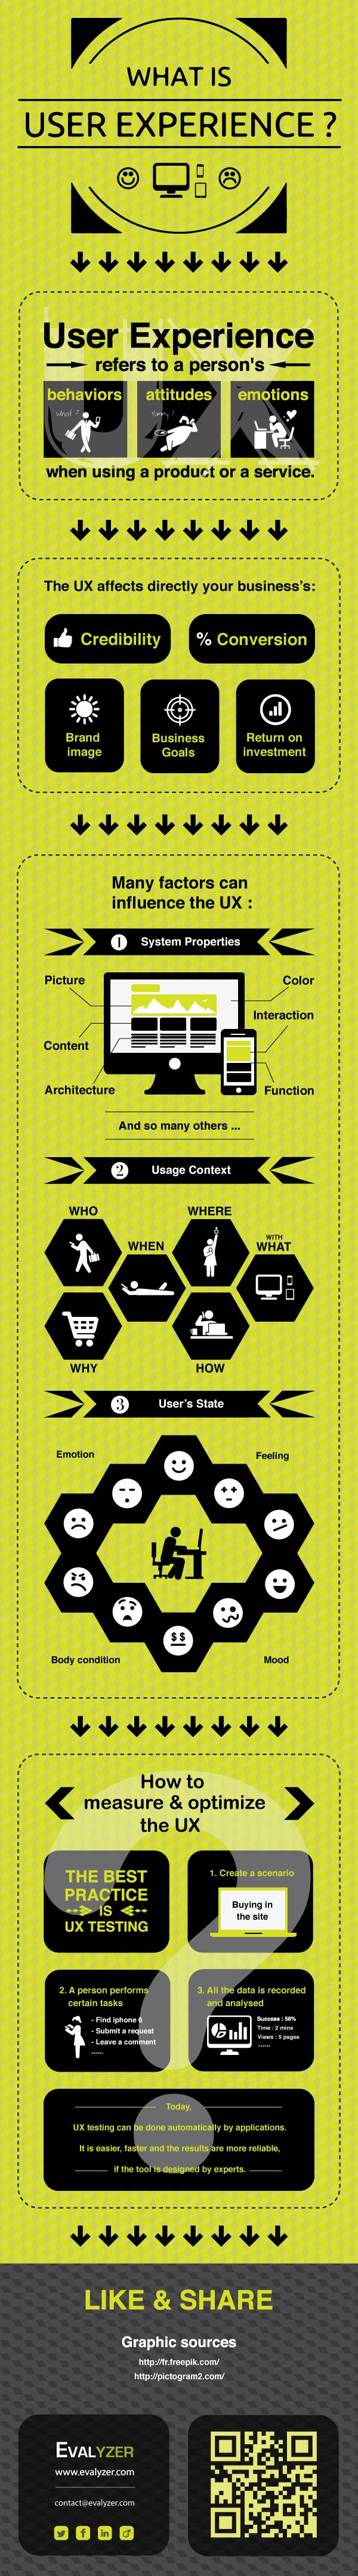 What is User Experience (UX) ?